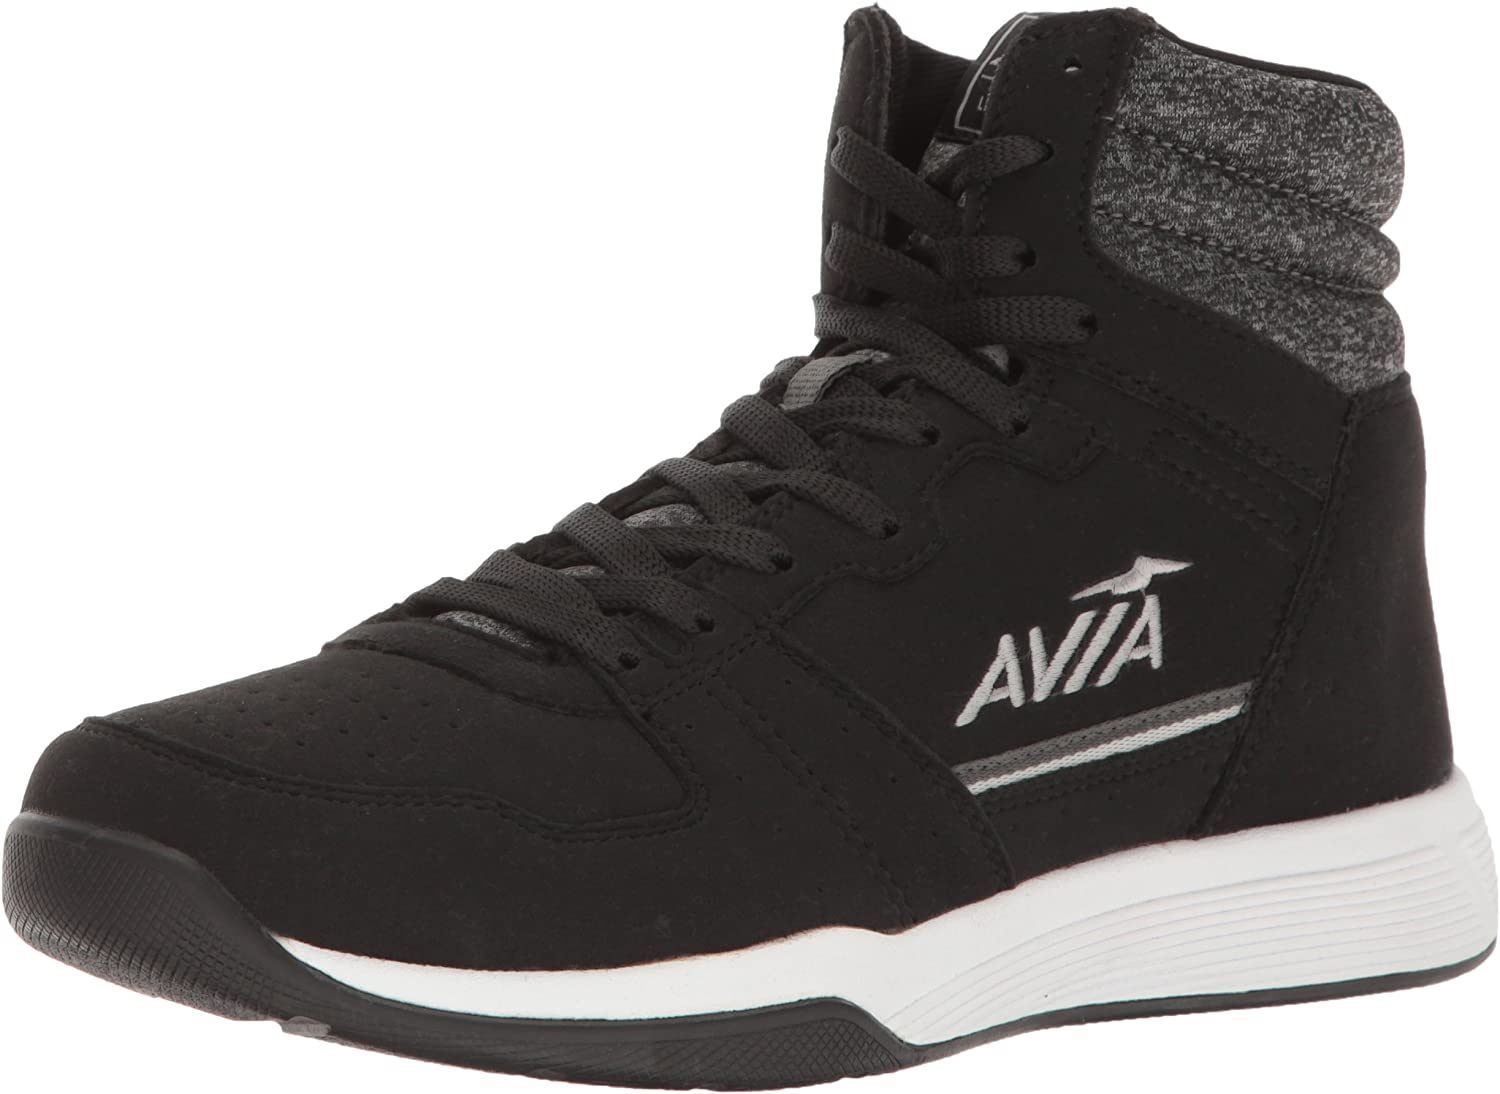 Avia Women's ALC-Diva Cross-Trainer shoes